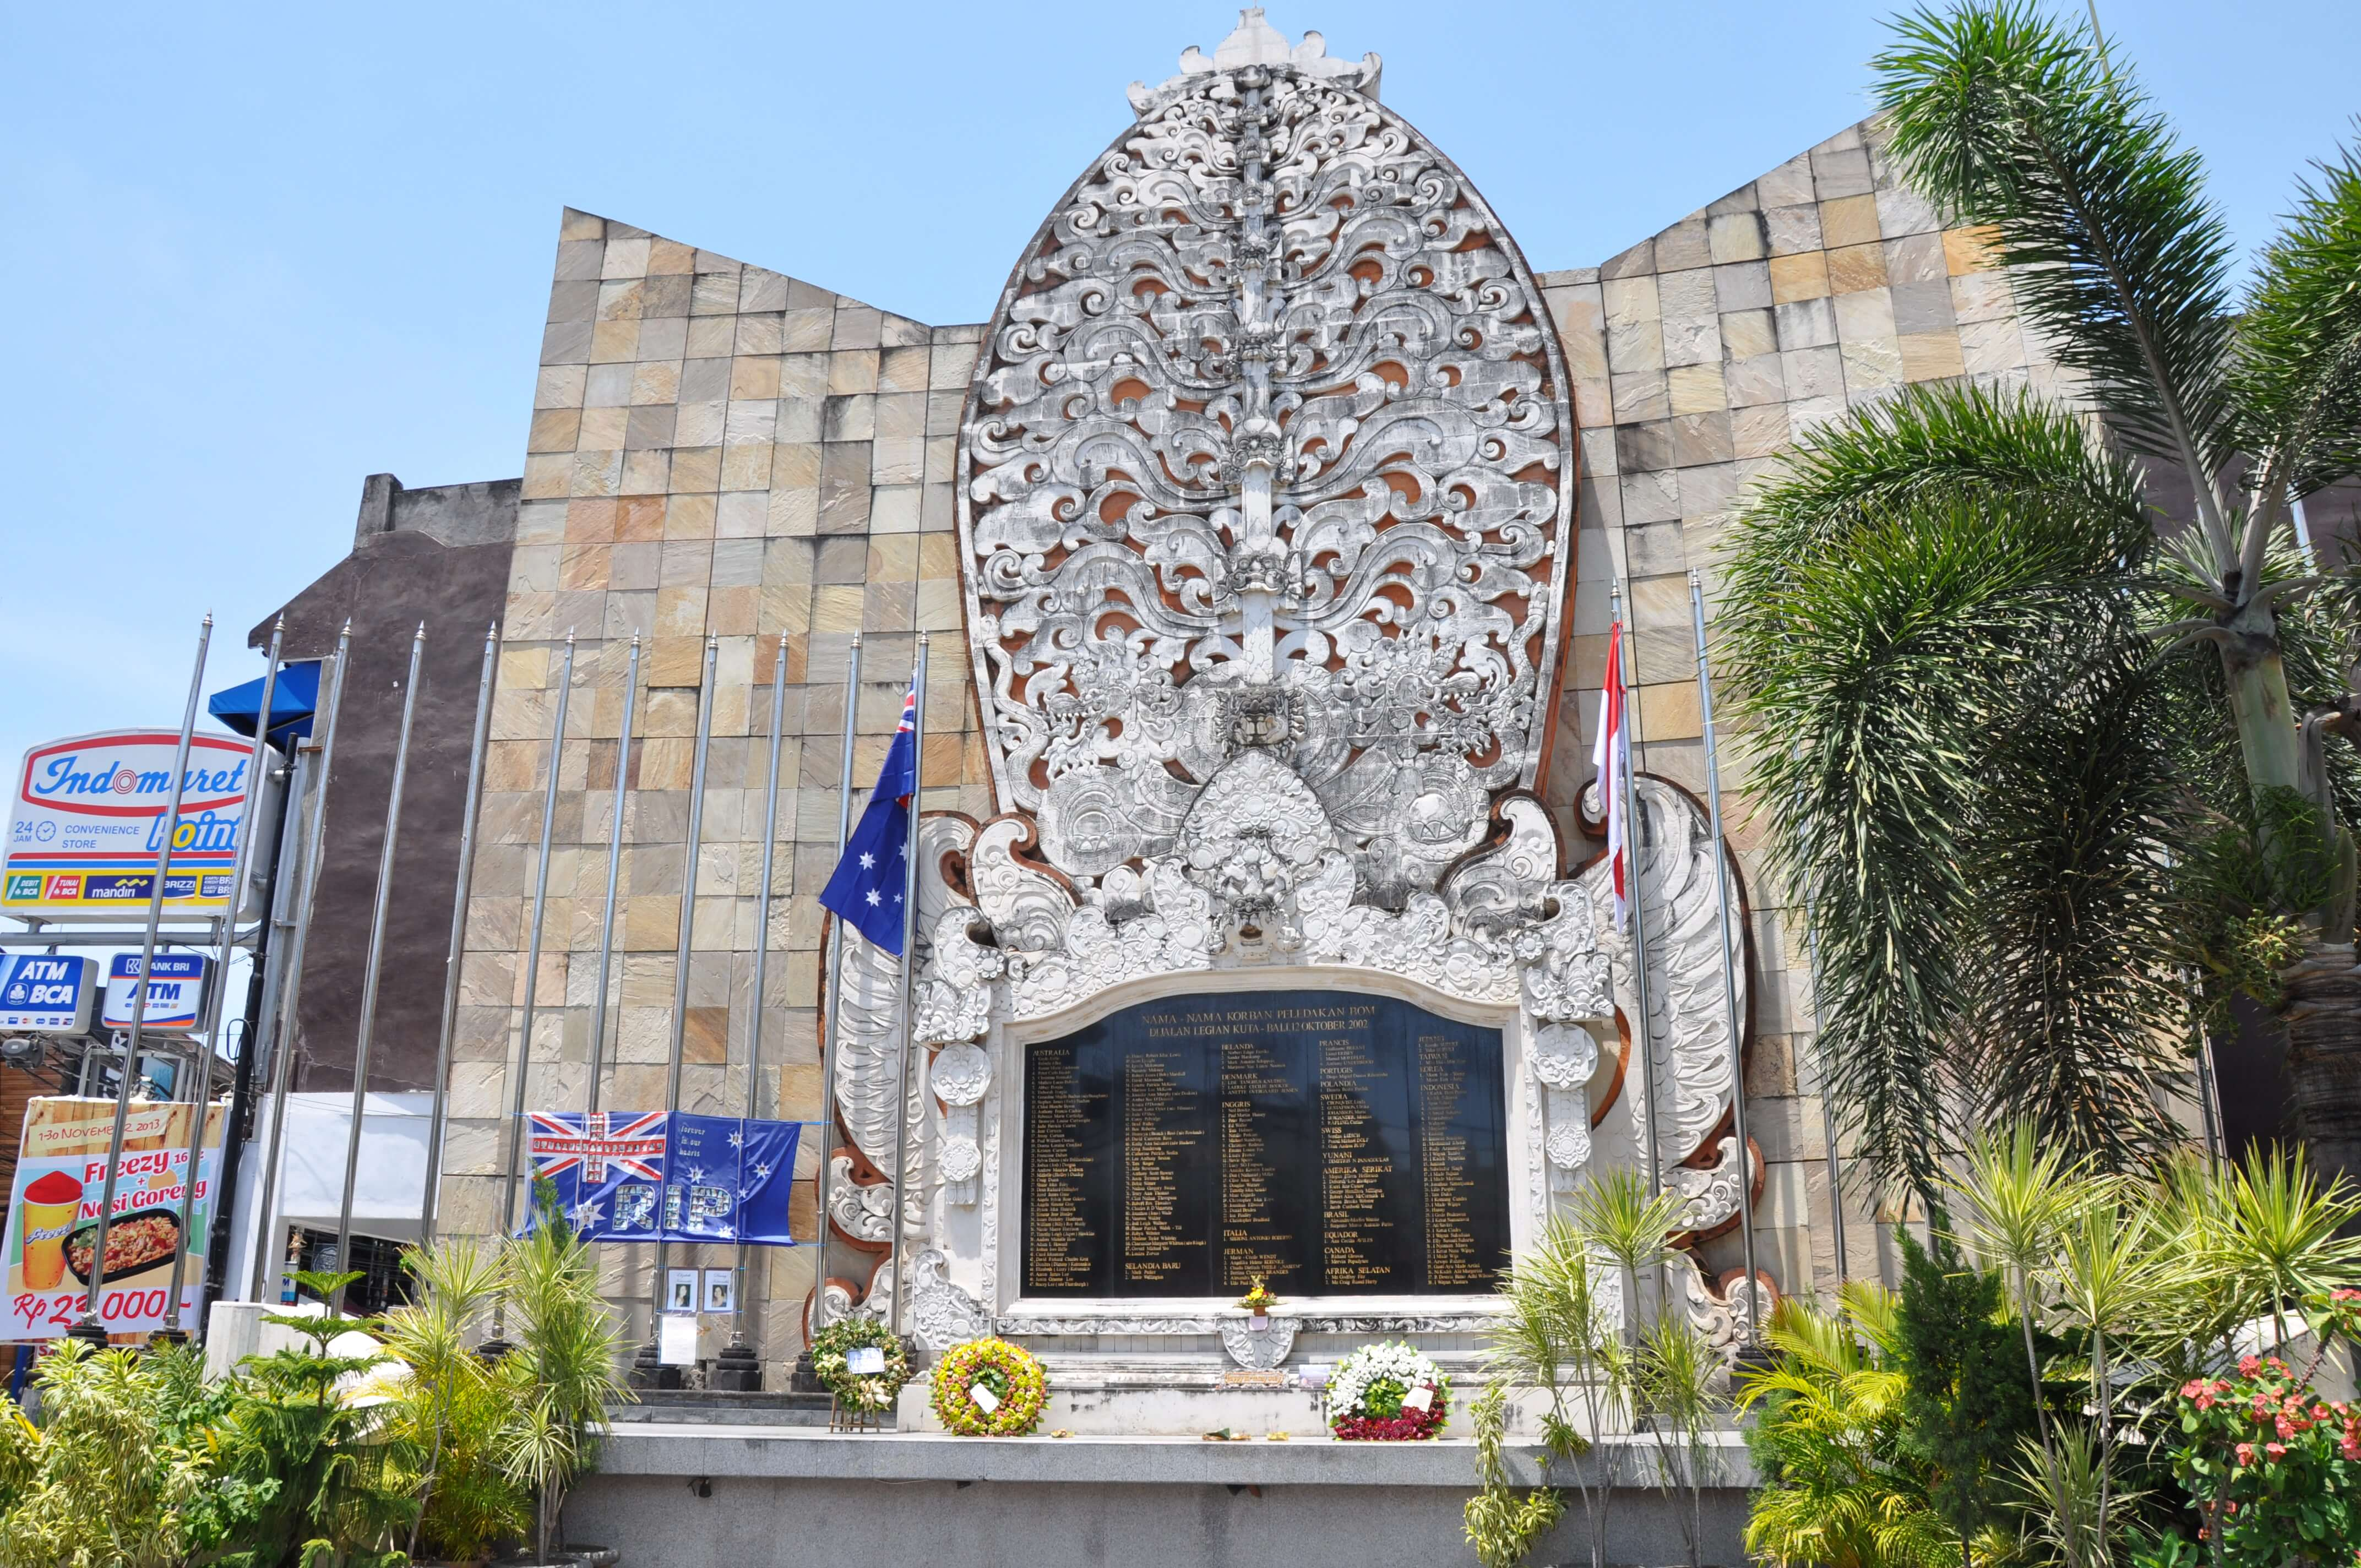 A memorial to commemorate the victims of the Bali bombing in 2002. © Jorge Láscar / Flickr